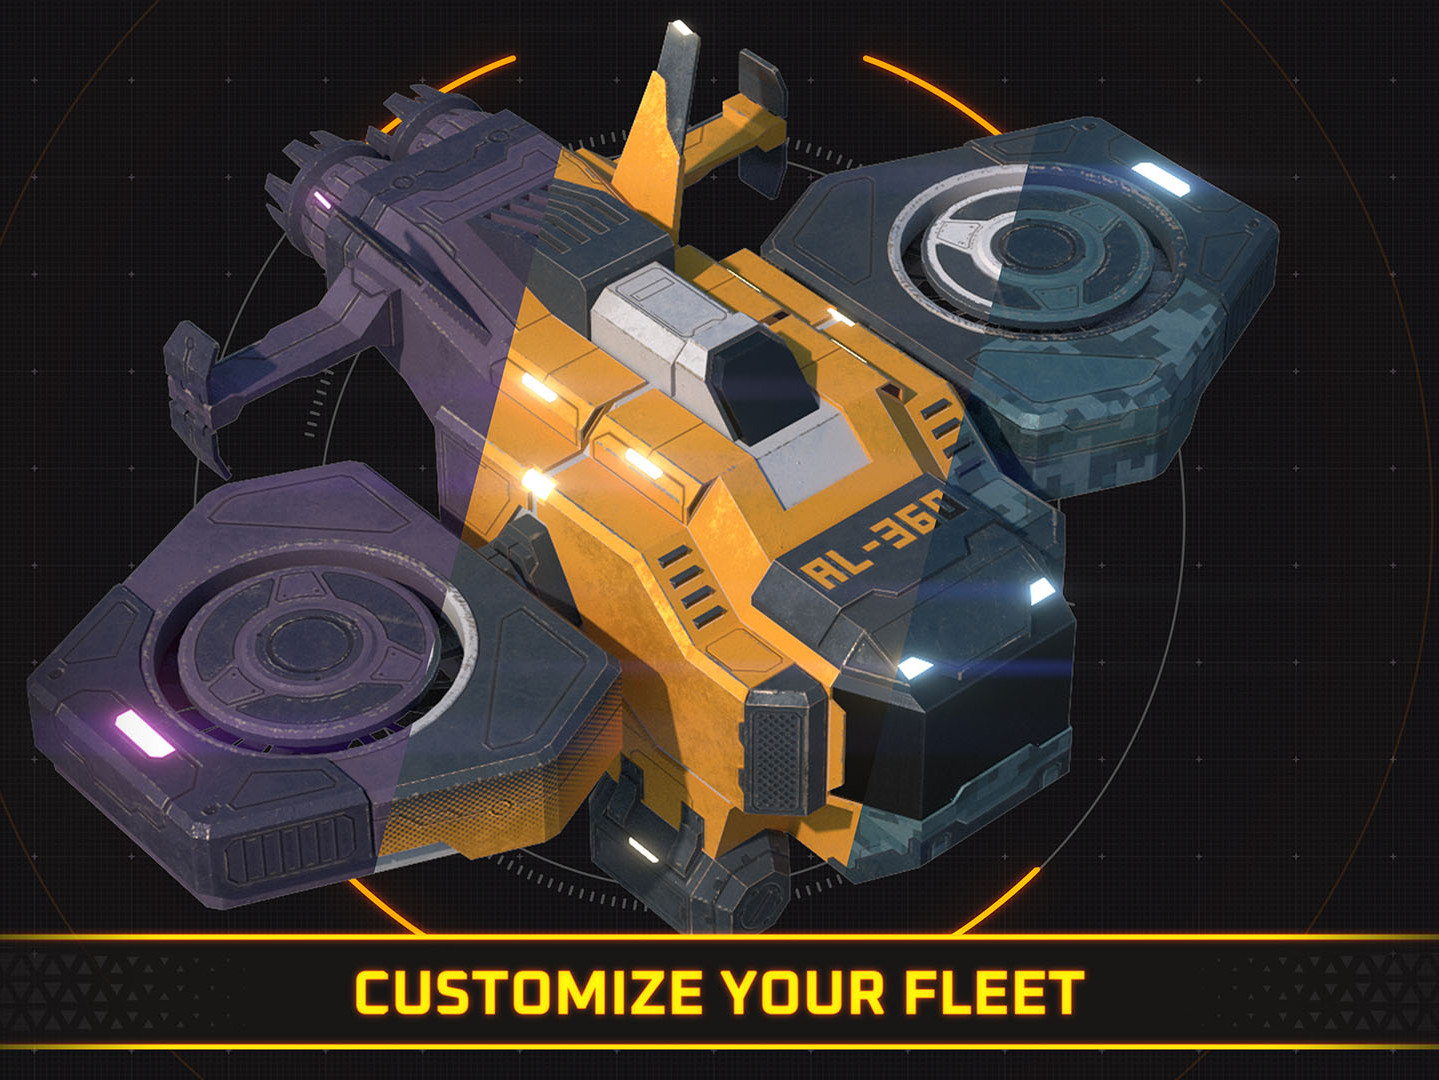 Customize your fleet